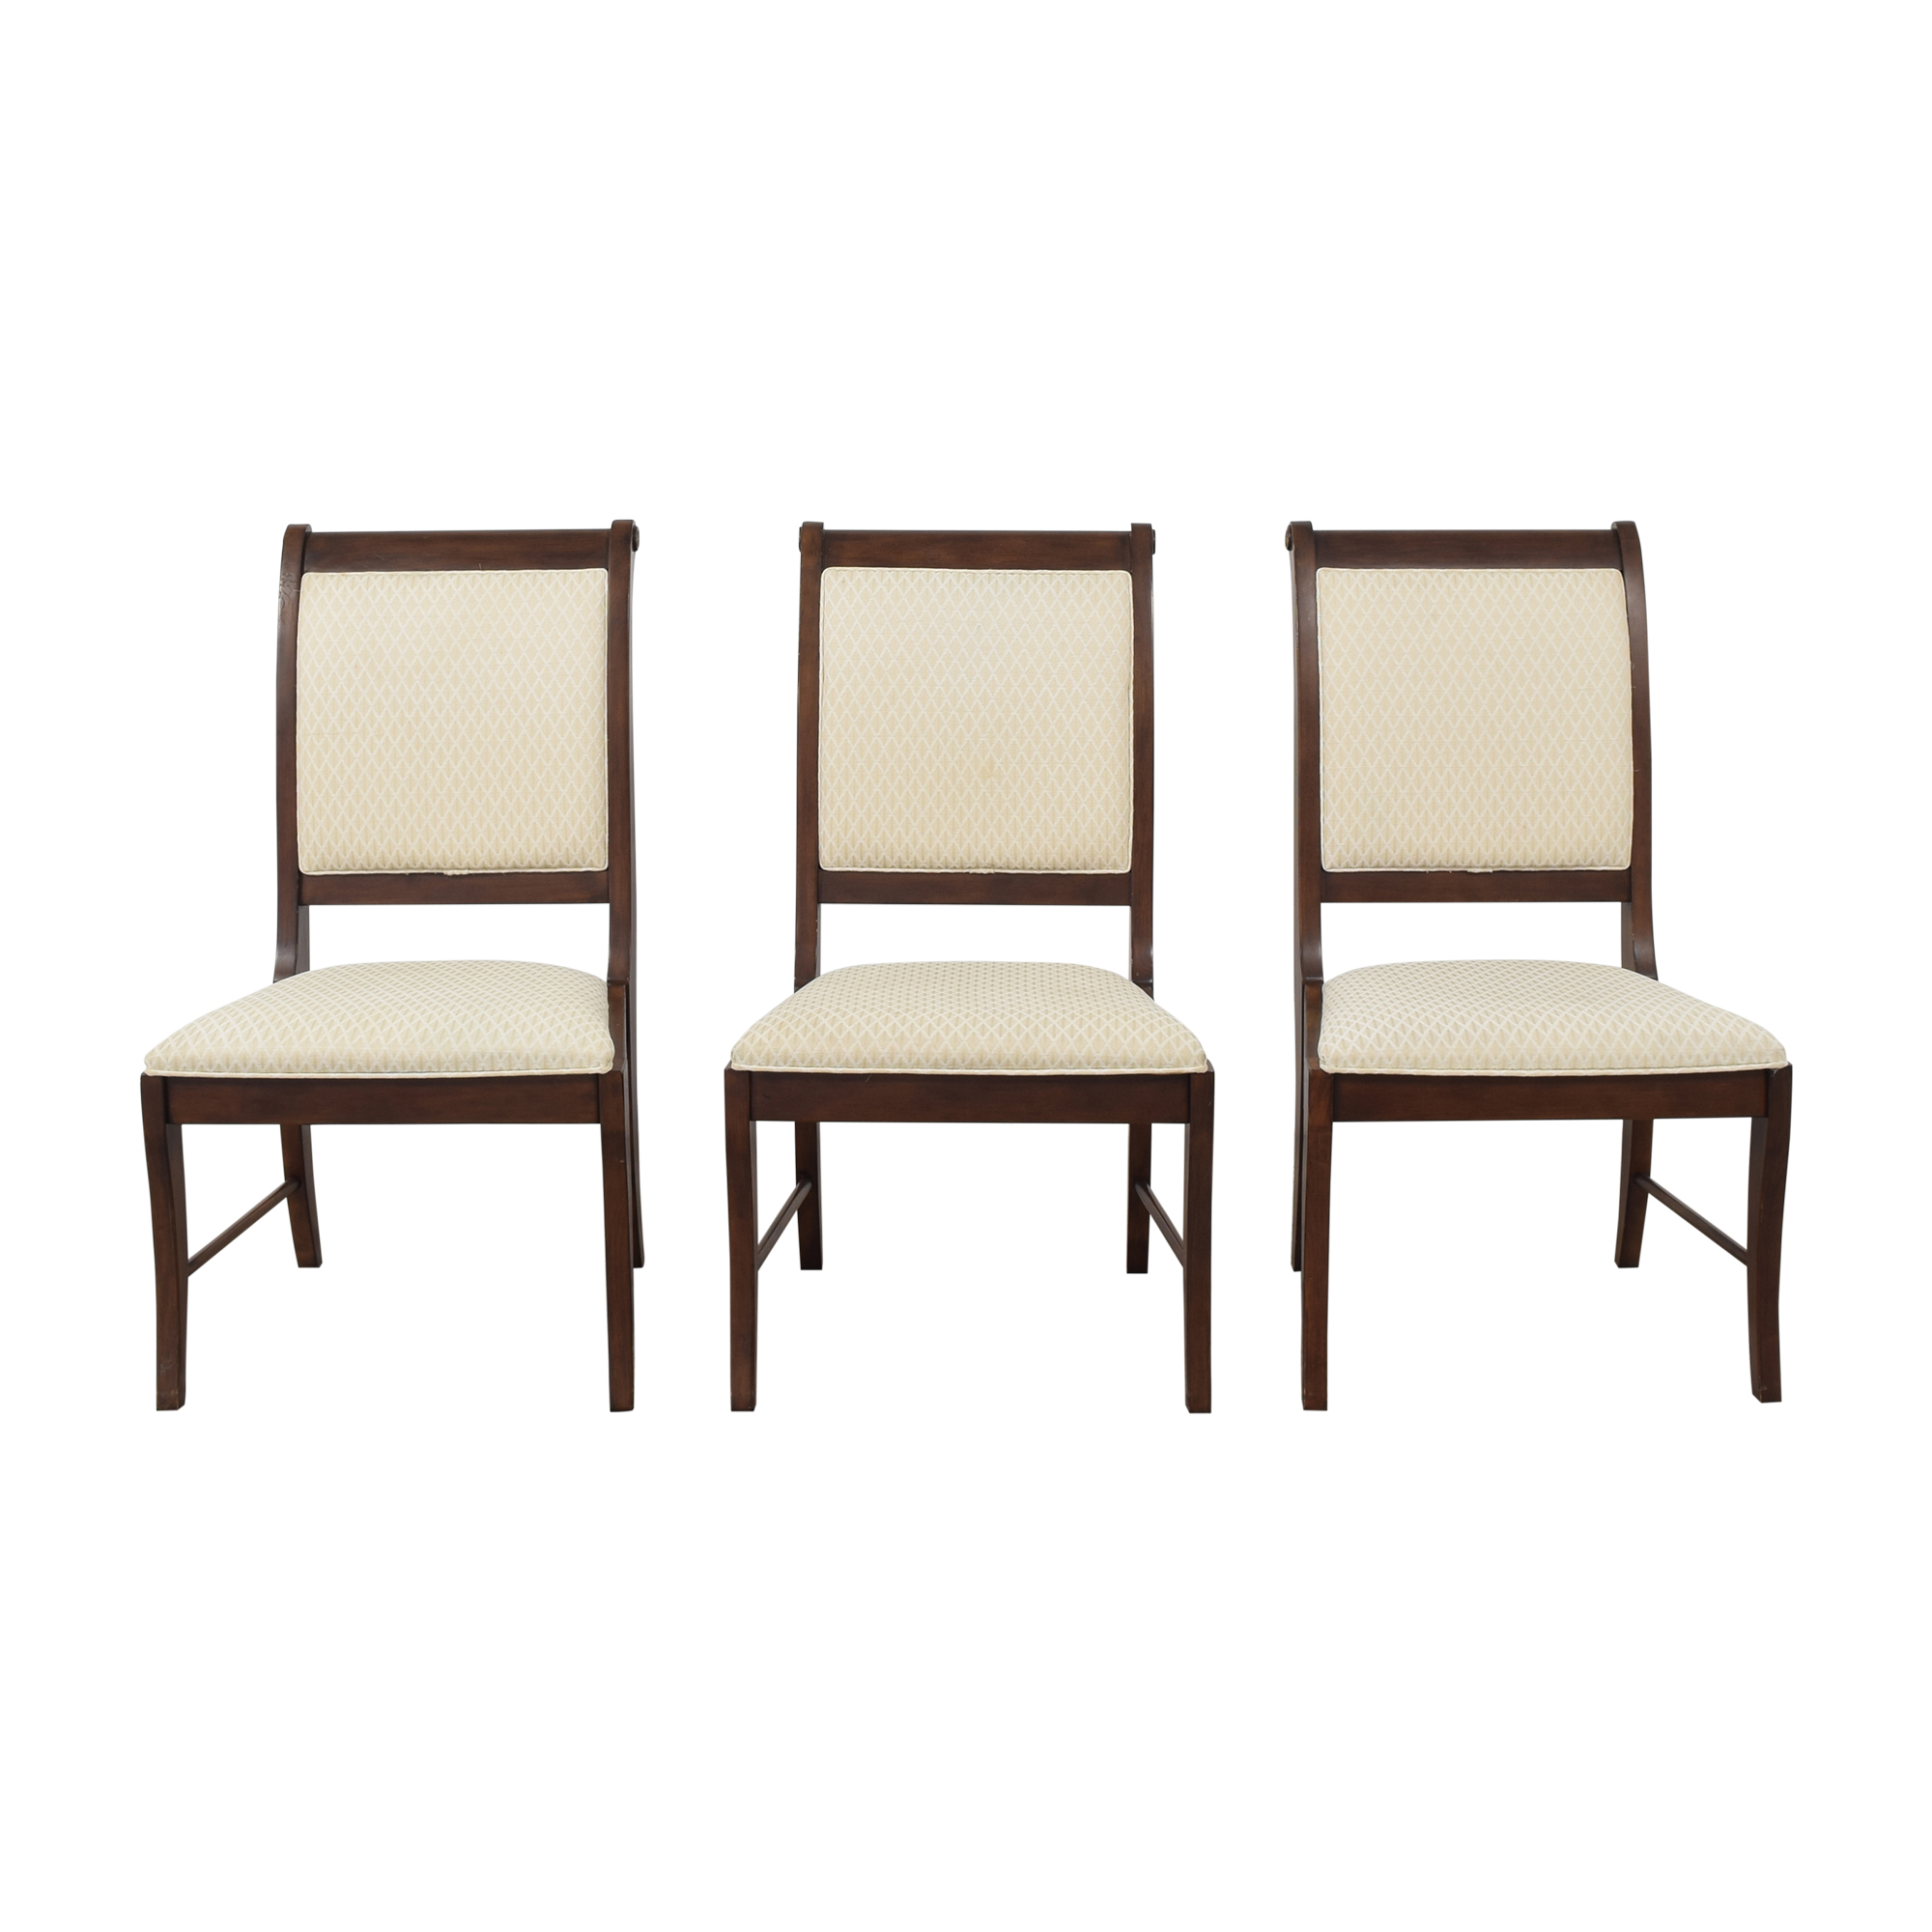 Broyhill Furniture Broyhill Furniture Dining Side Chairs second hand